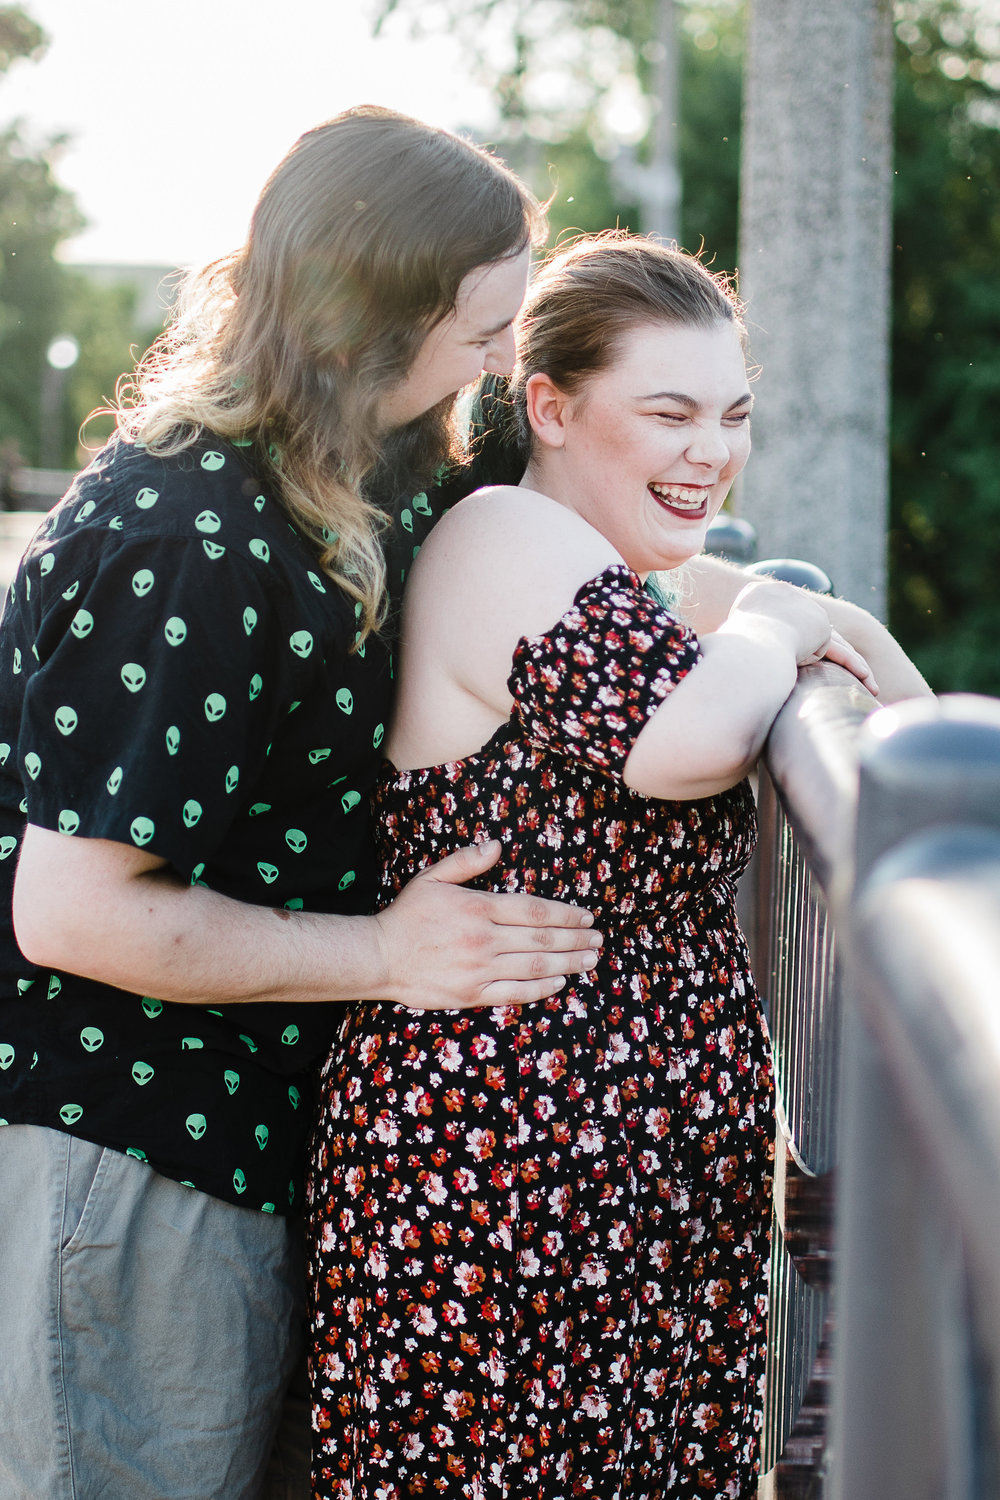 SavannahandTomEngagement-40.jpg